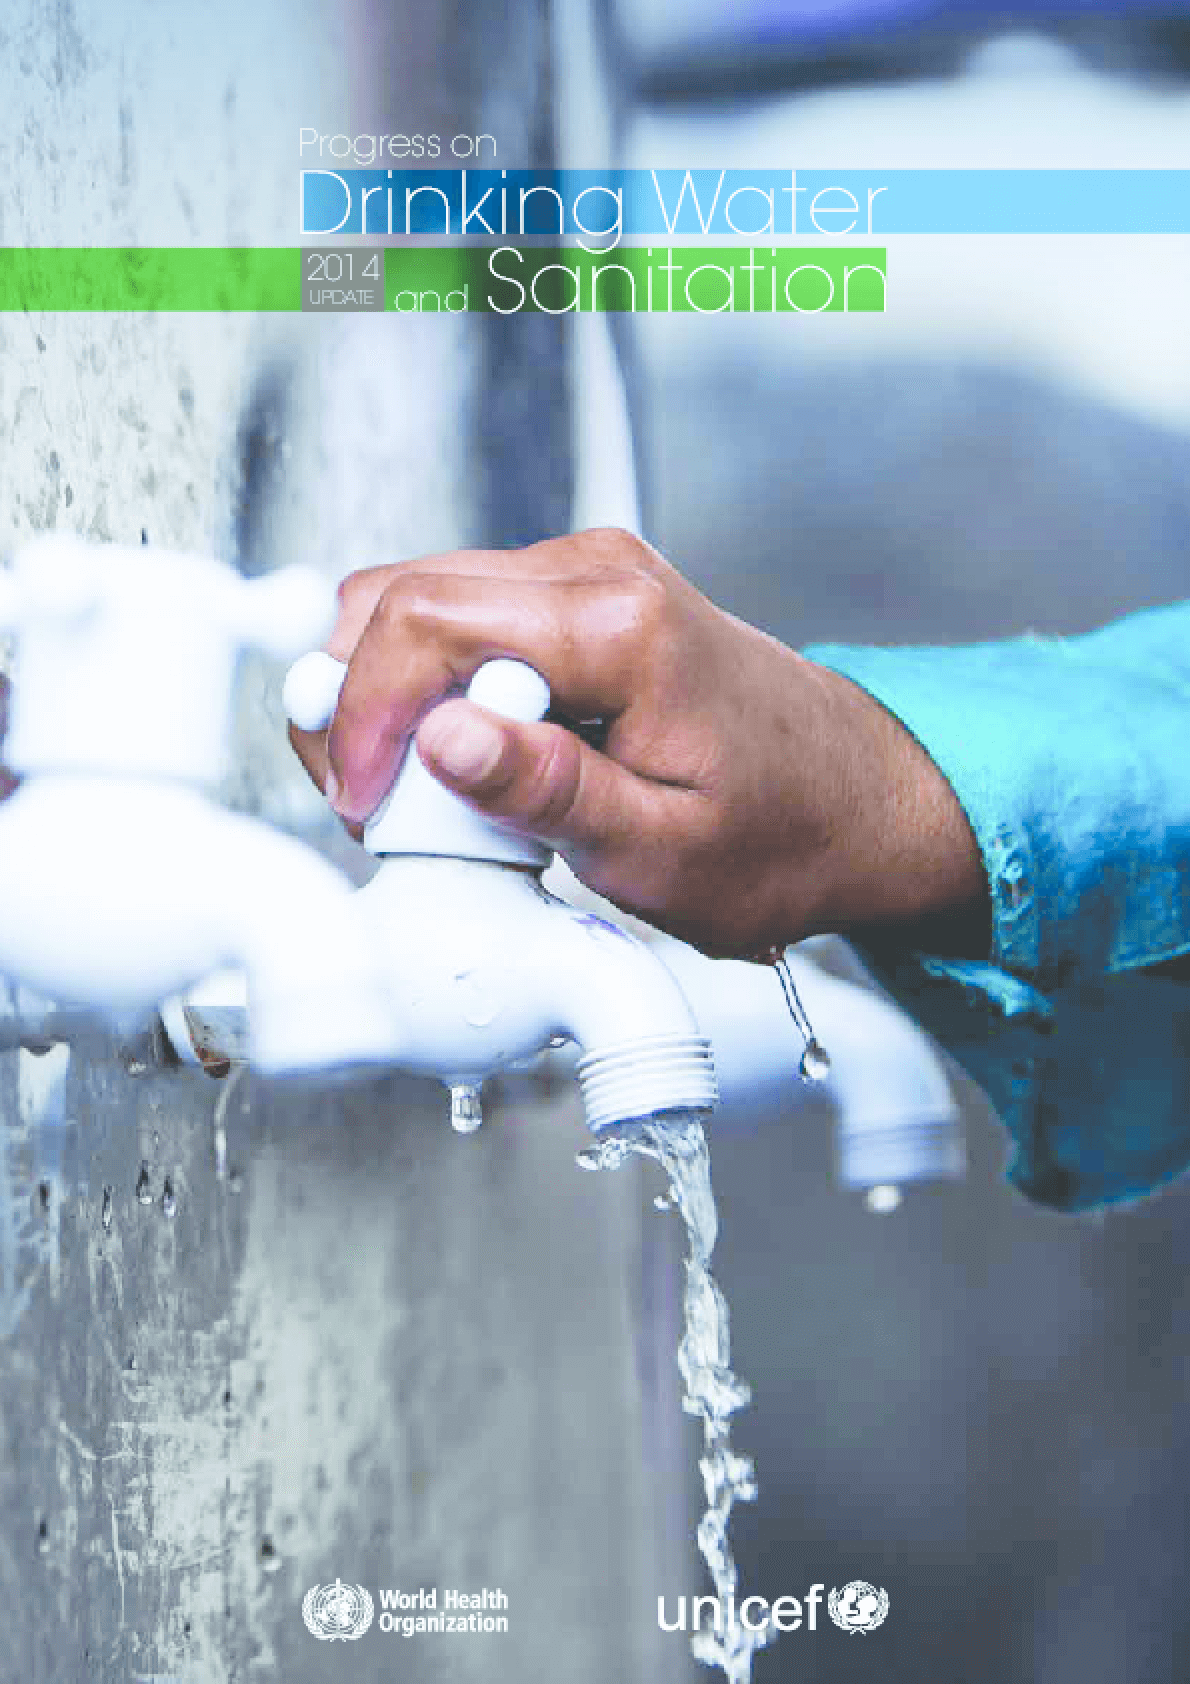 Progress on Drinking Water and Sanitation: 2014 Update